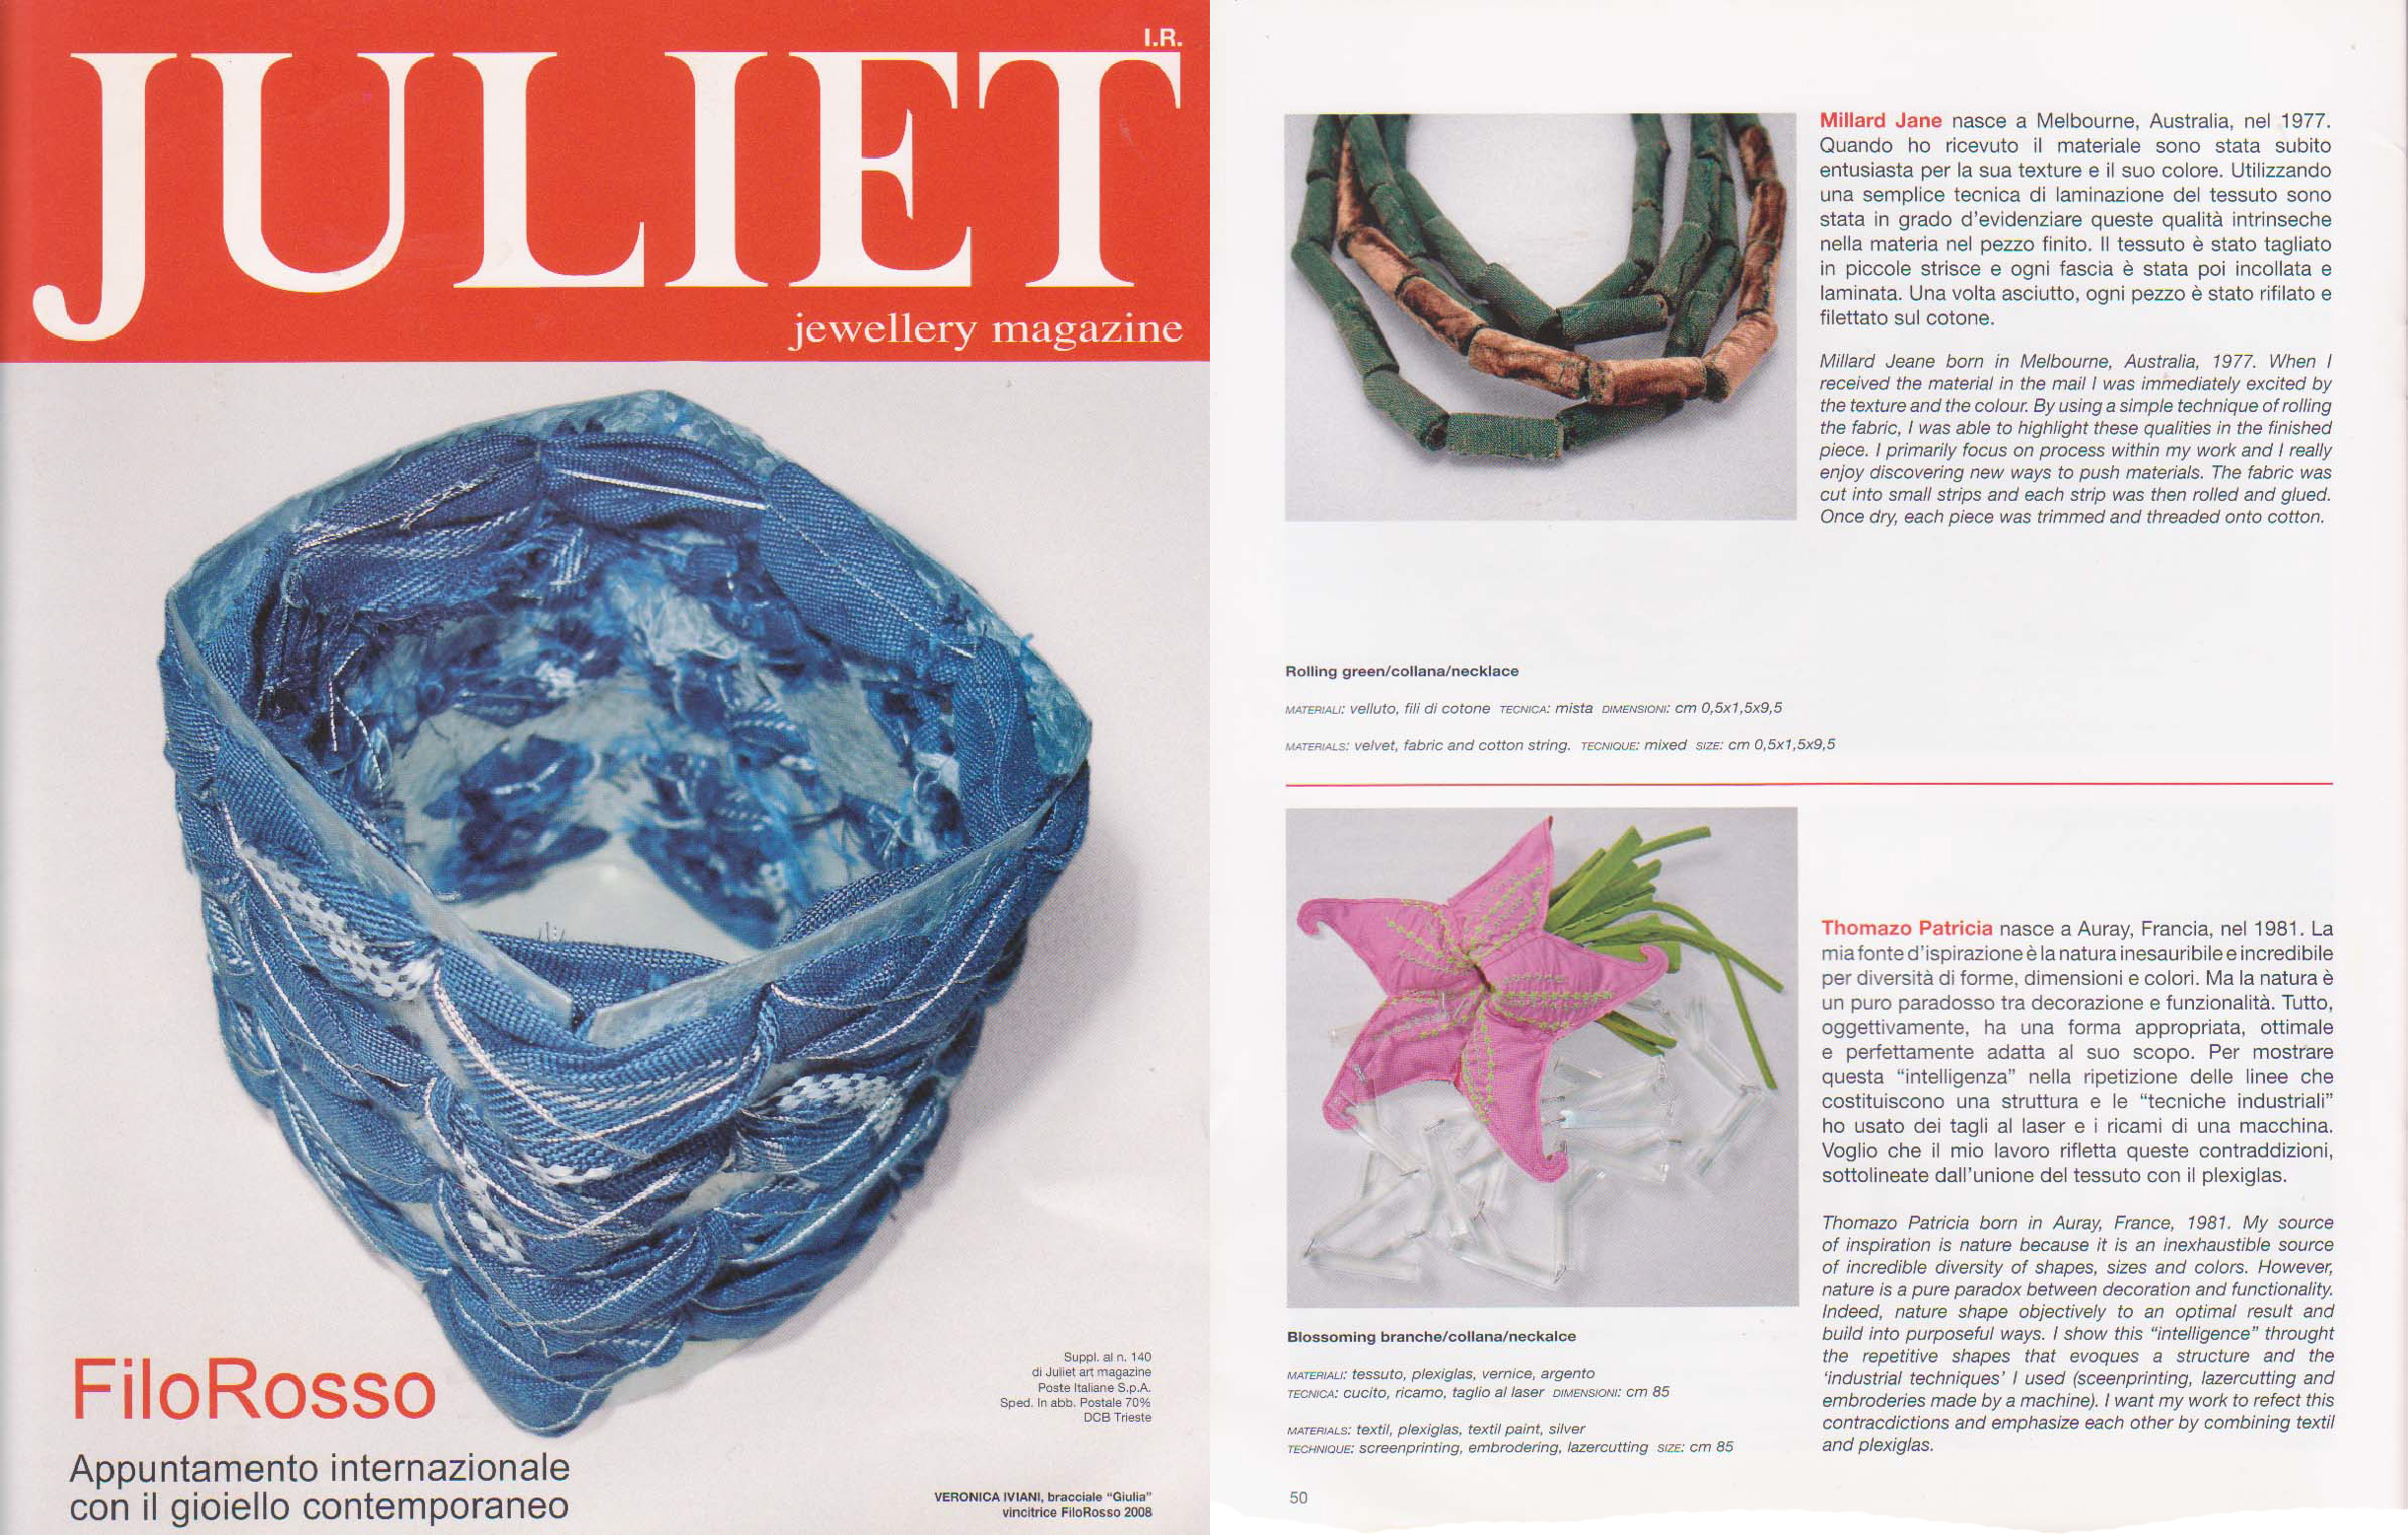 pop-a-porter's jewellery featured in the Juliet magazine